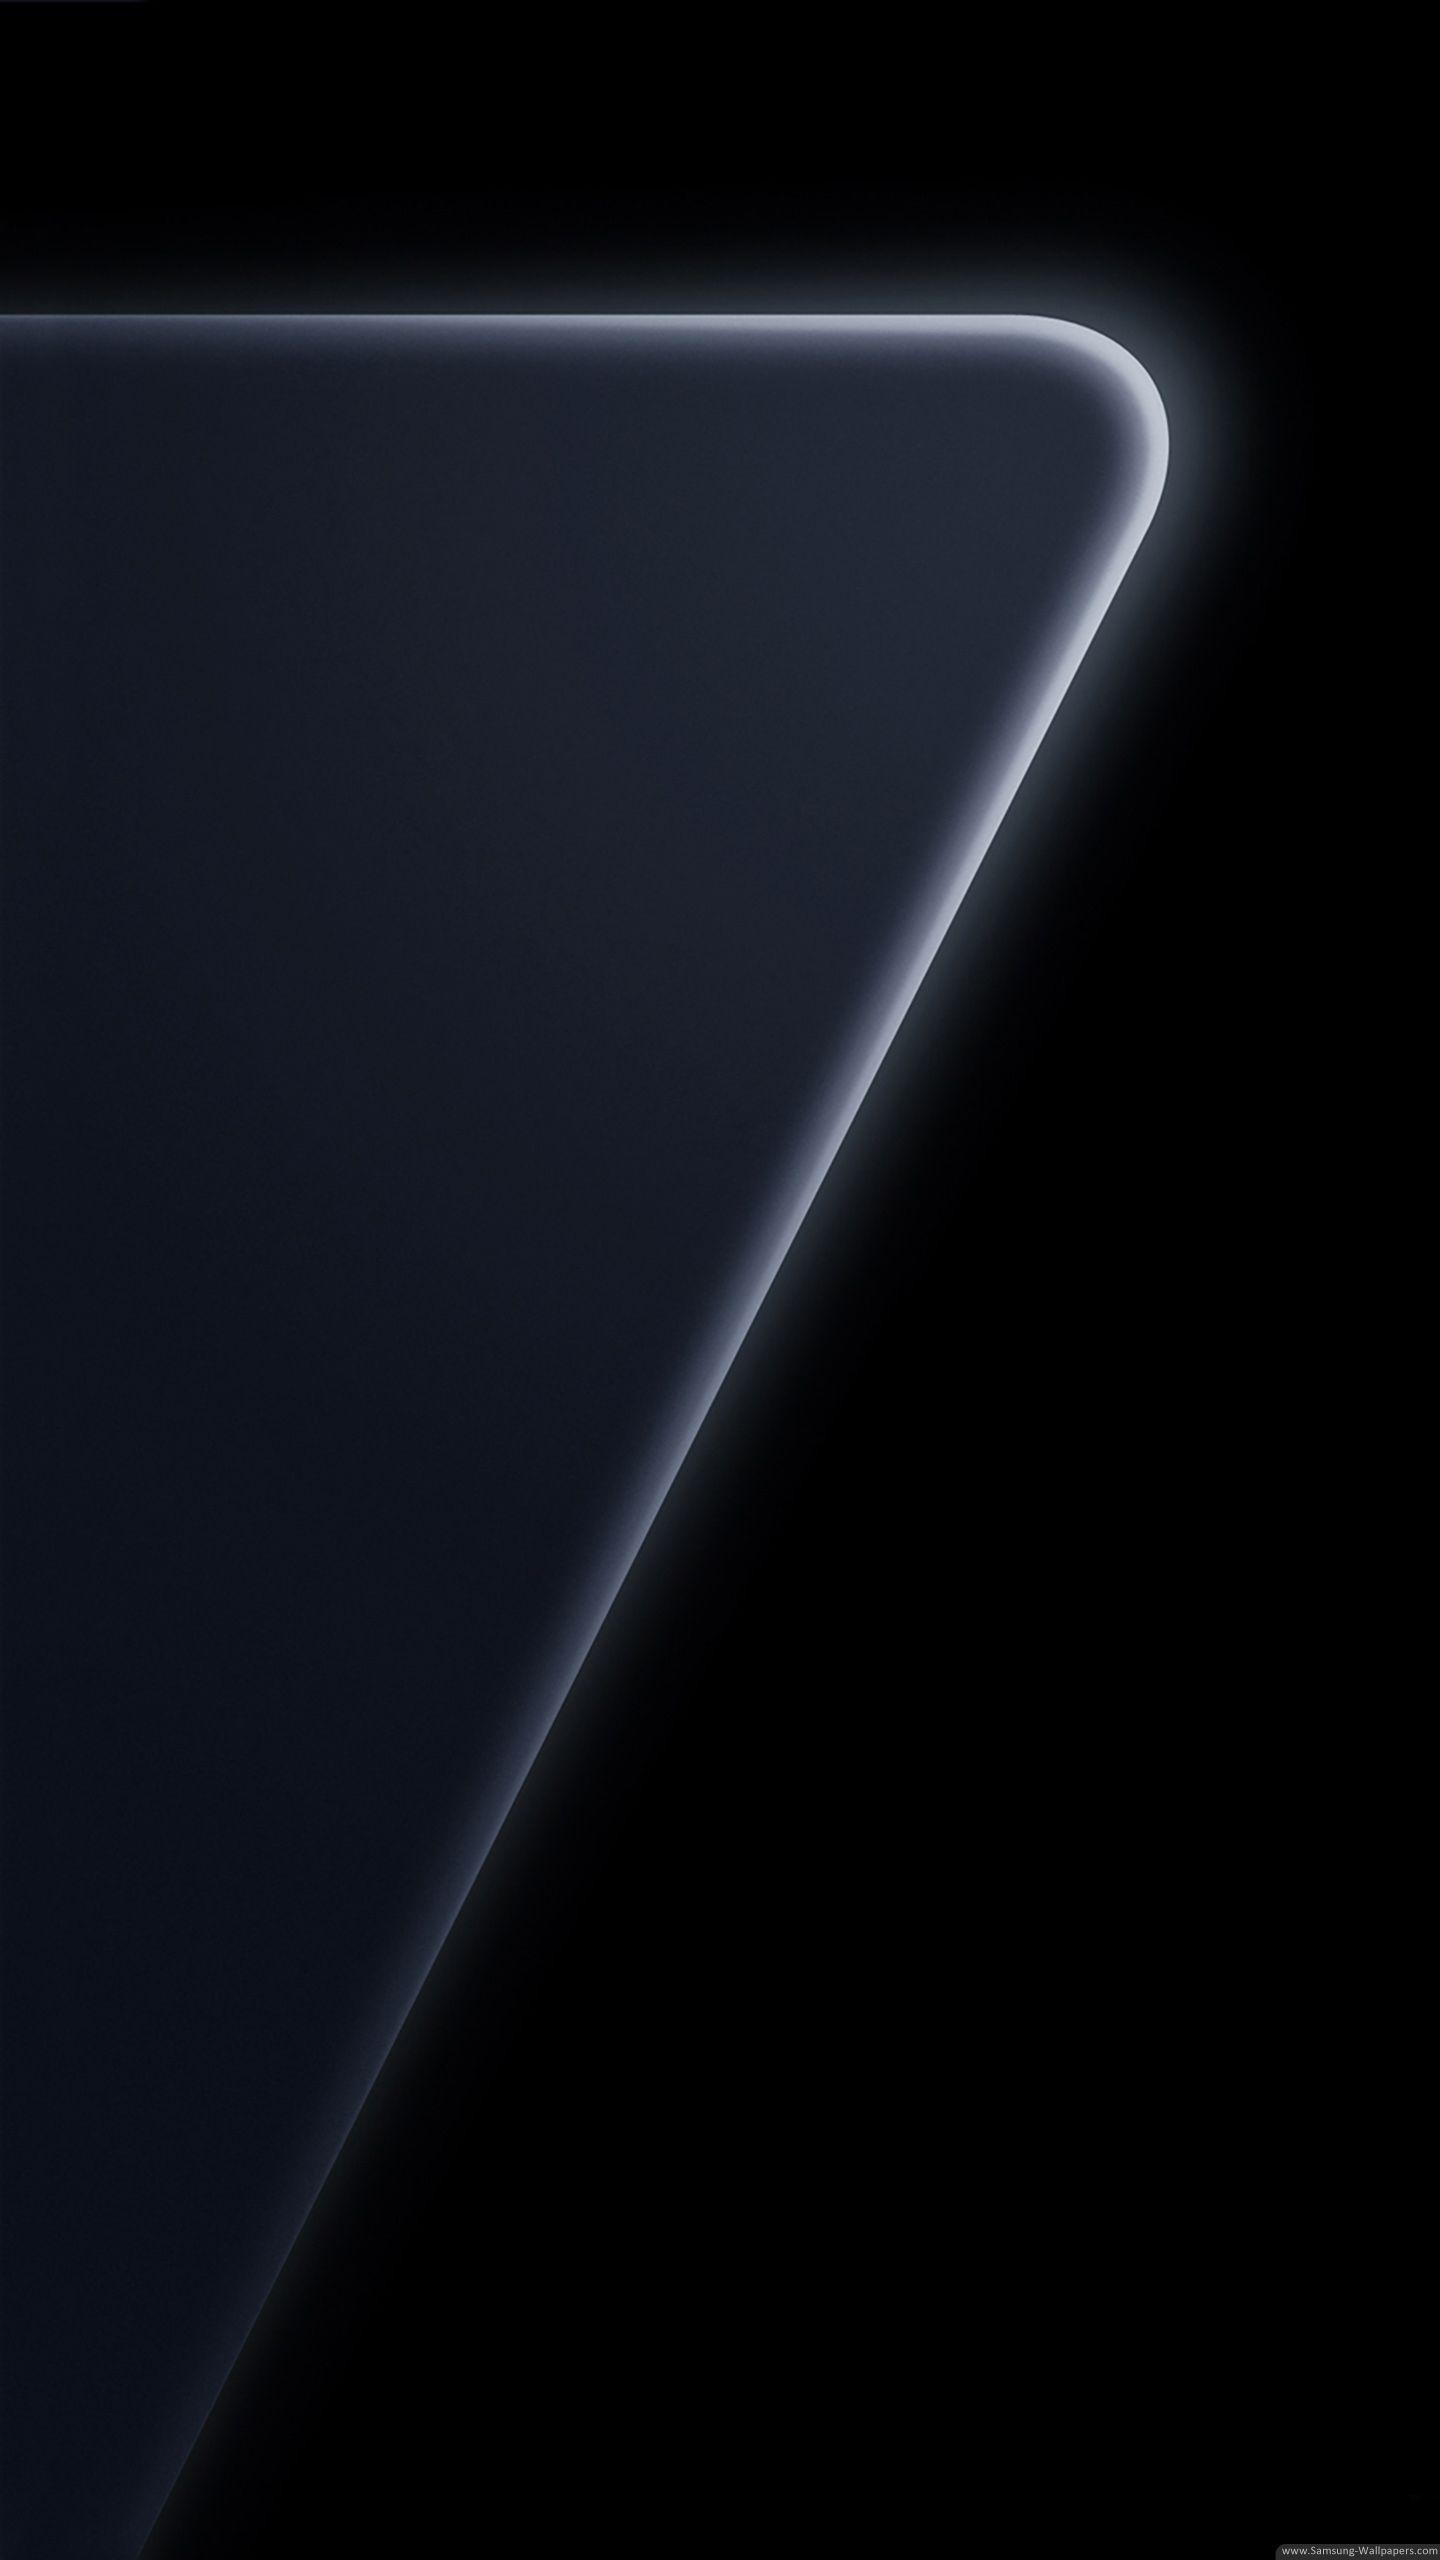 Samsung s6 edge wallpaper 4k